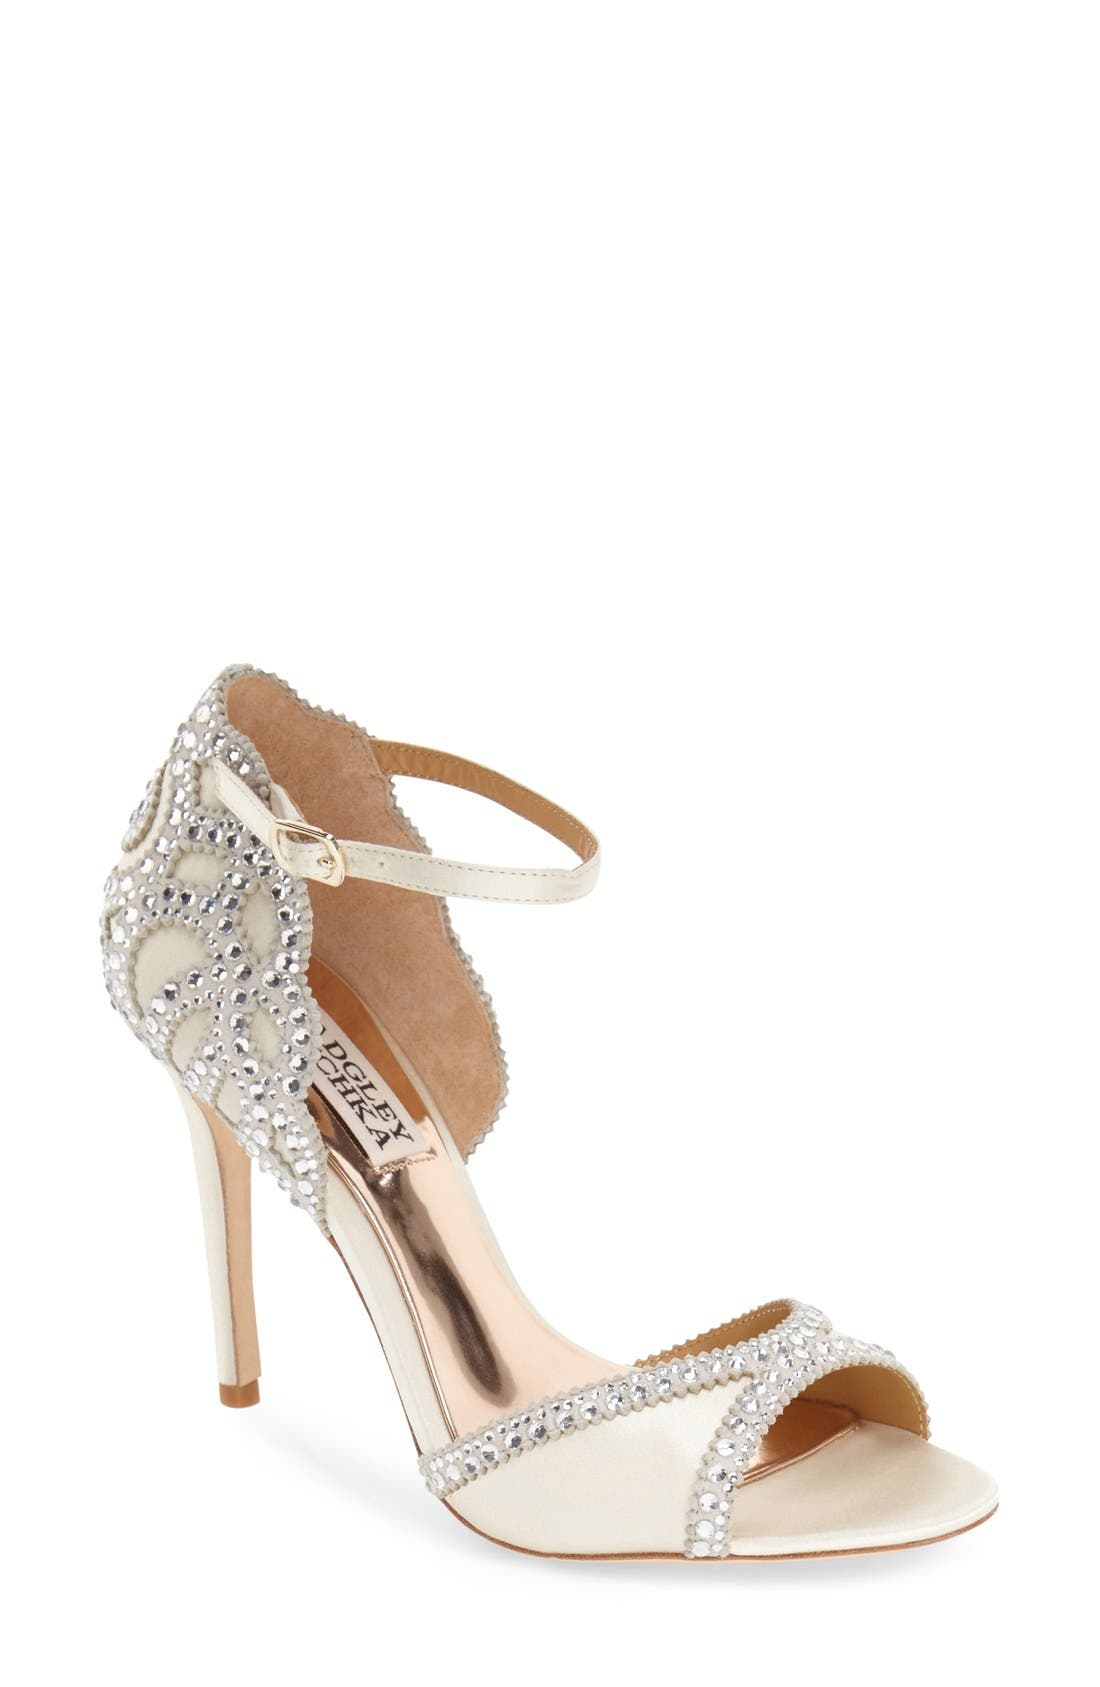 Alternate Image 1 Selected - Badgley Mischka 'Roxy' Sandal (Women)